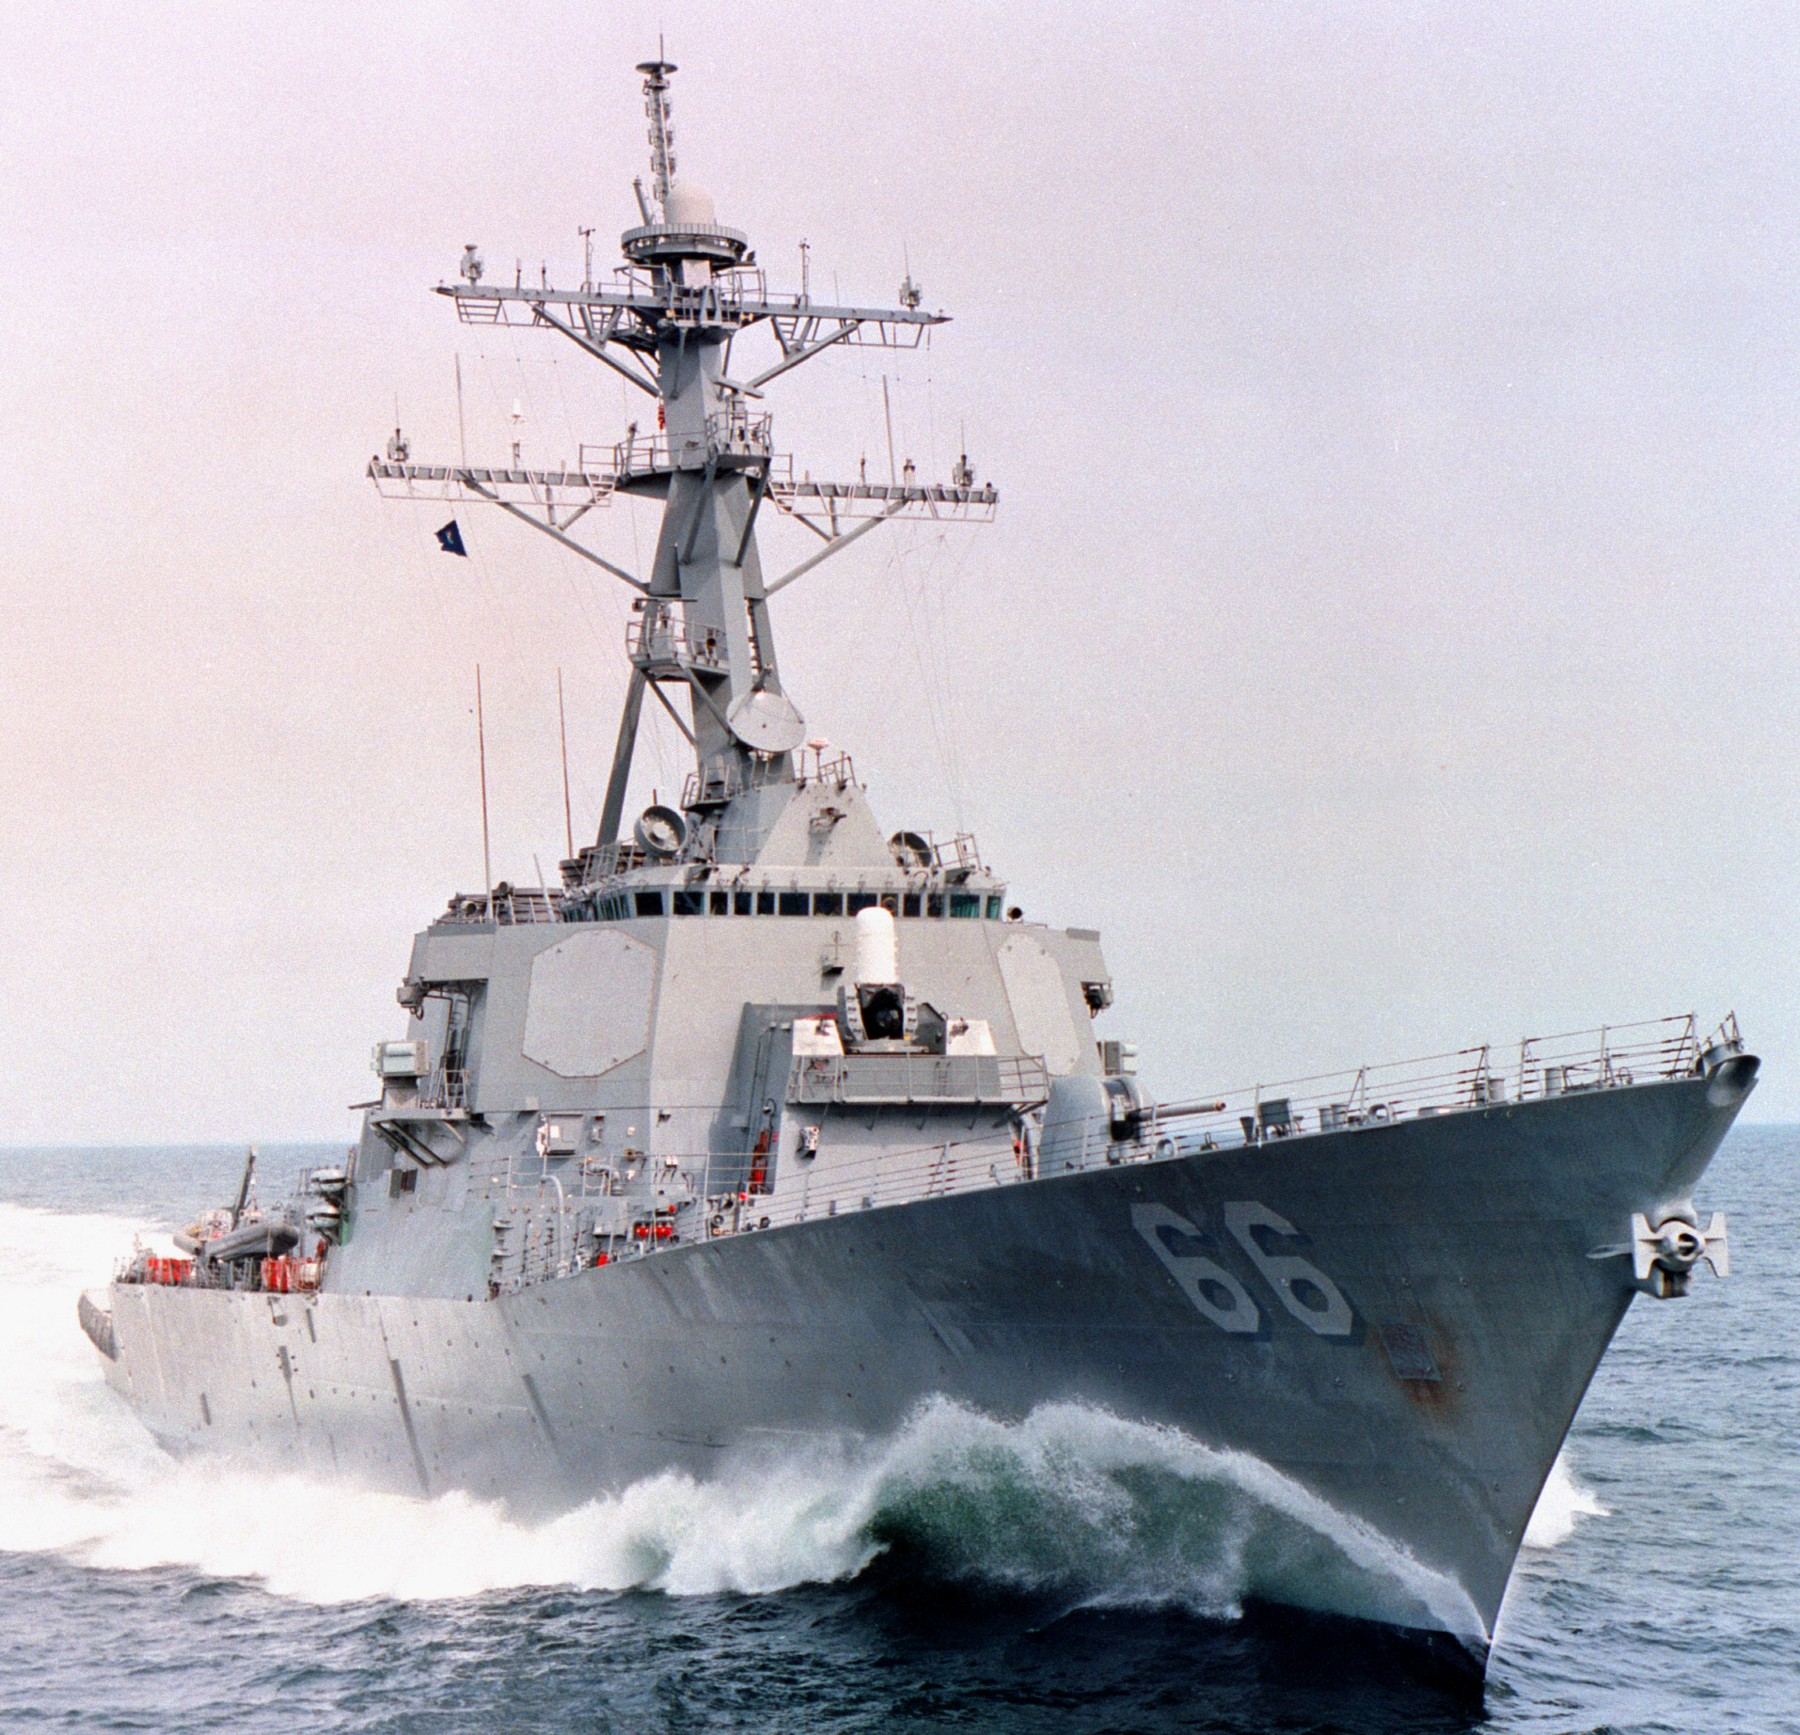 DDG 66 transits the Indian Ocean Guided-missile destroyer USS Gonzalez